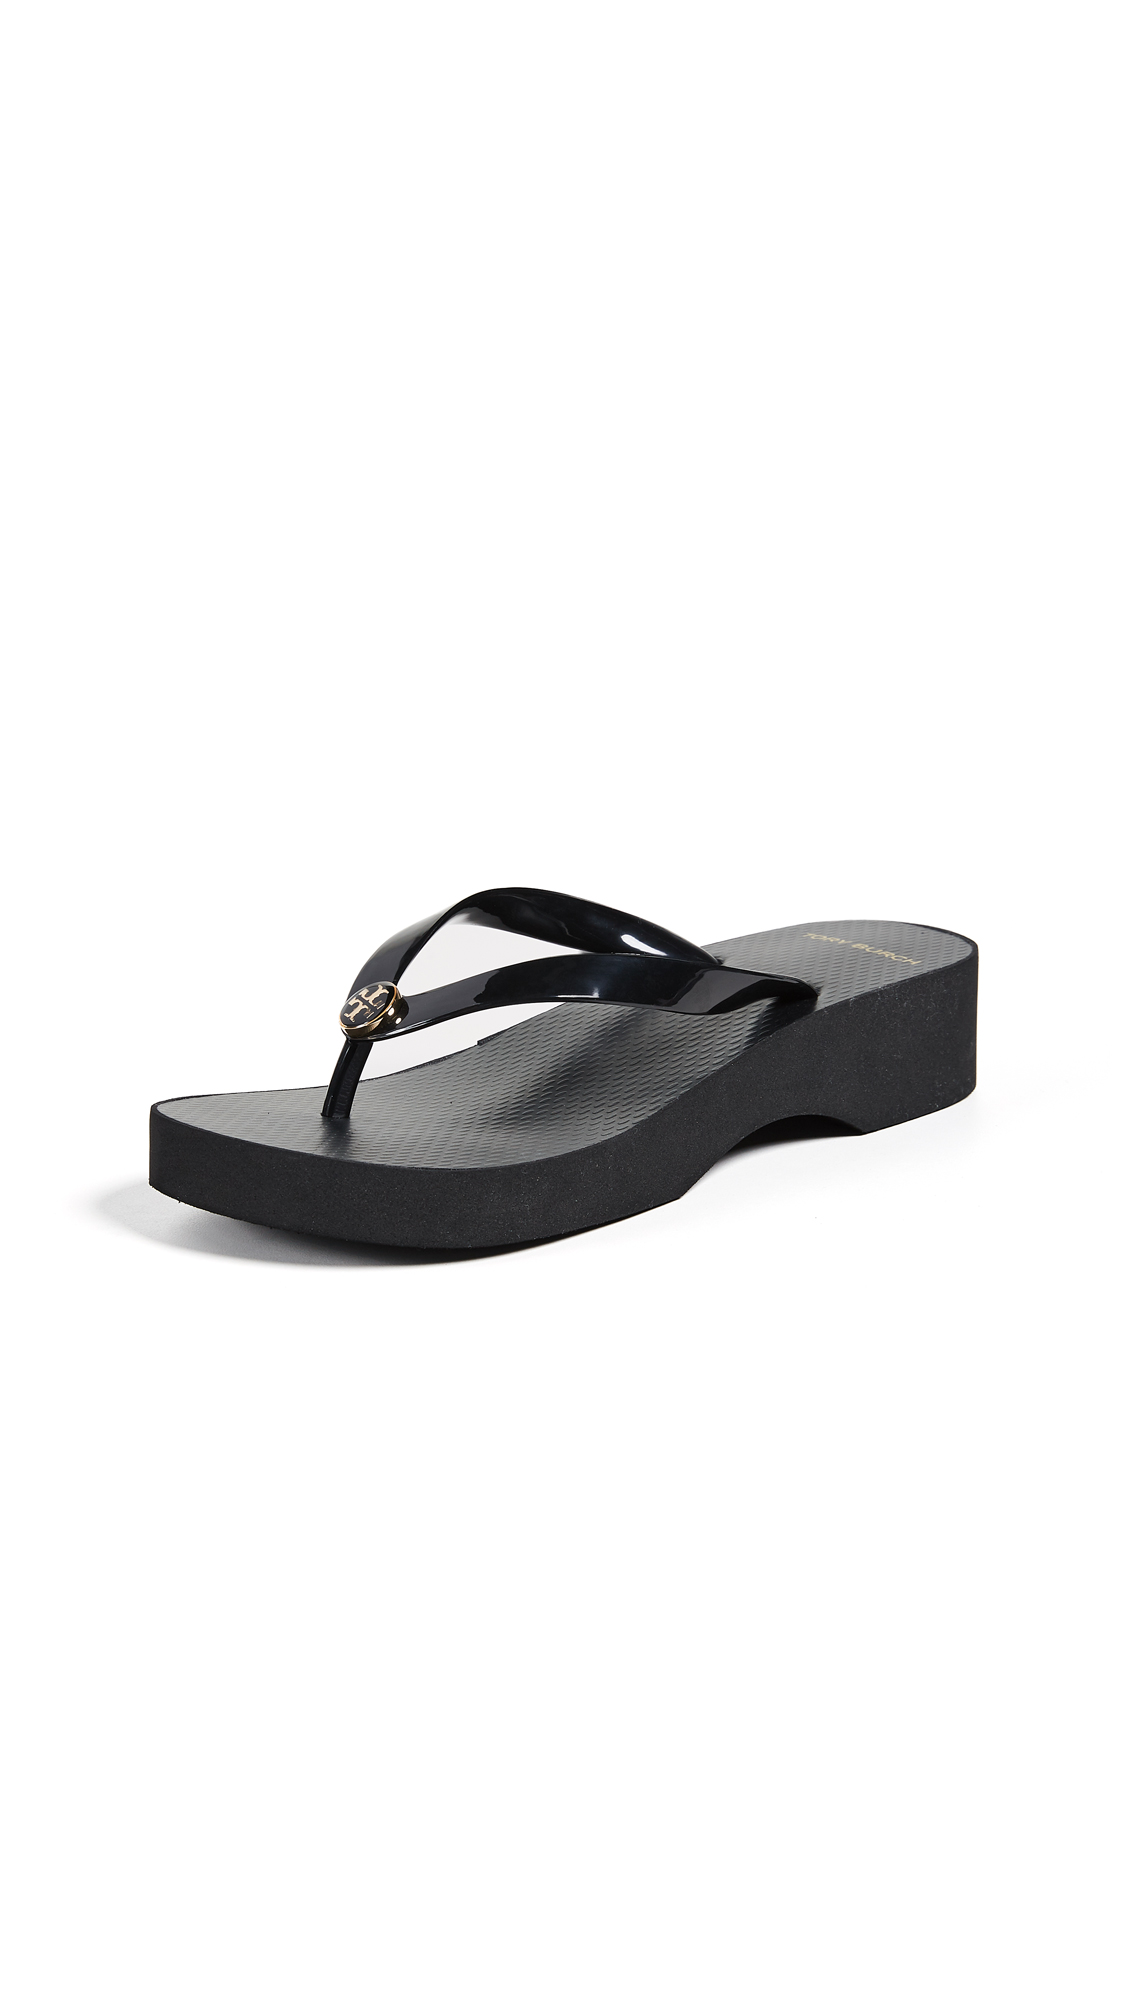 Tory Burch Cutout Wedge Flip Flops - Black/Black